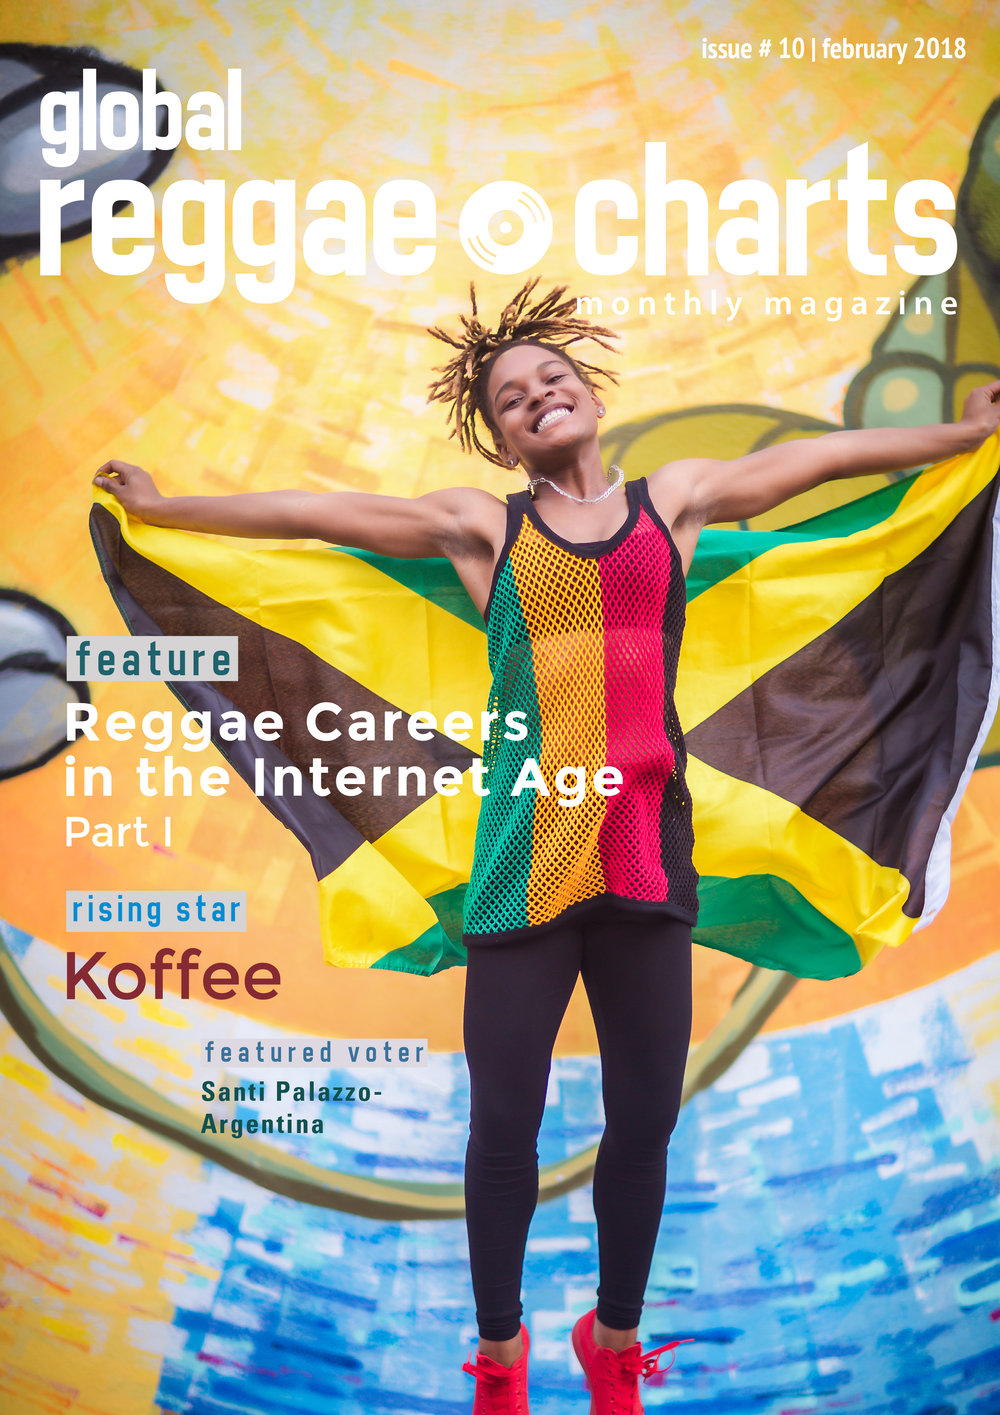 Global Reggae Charts - Issue #10 front cover.jpg